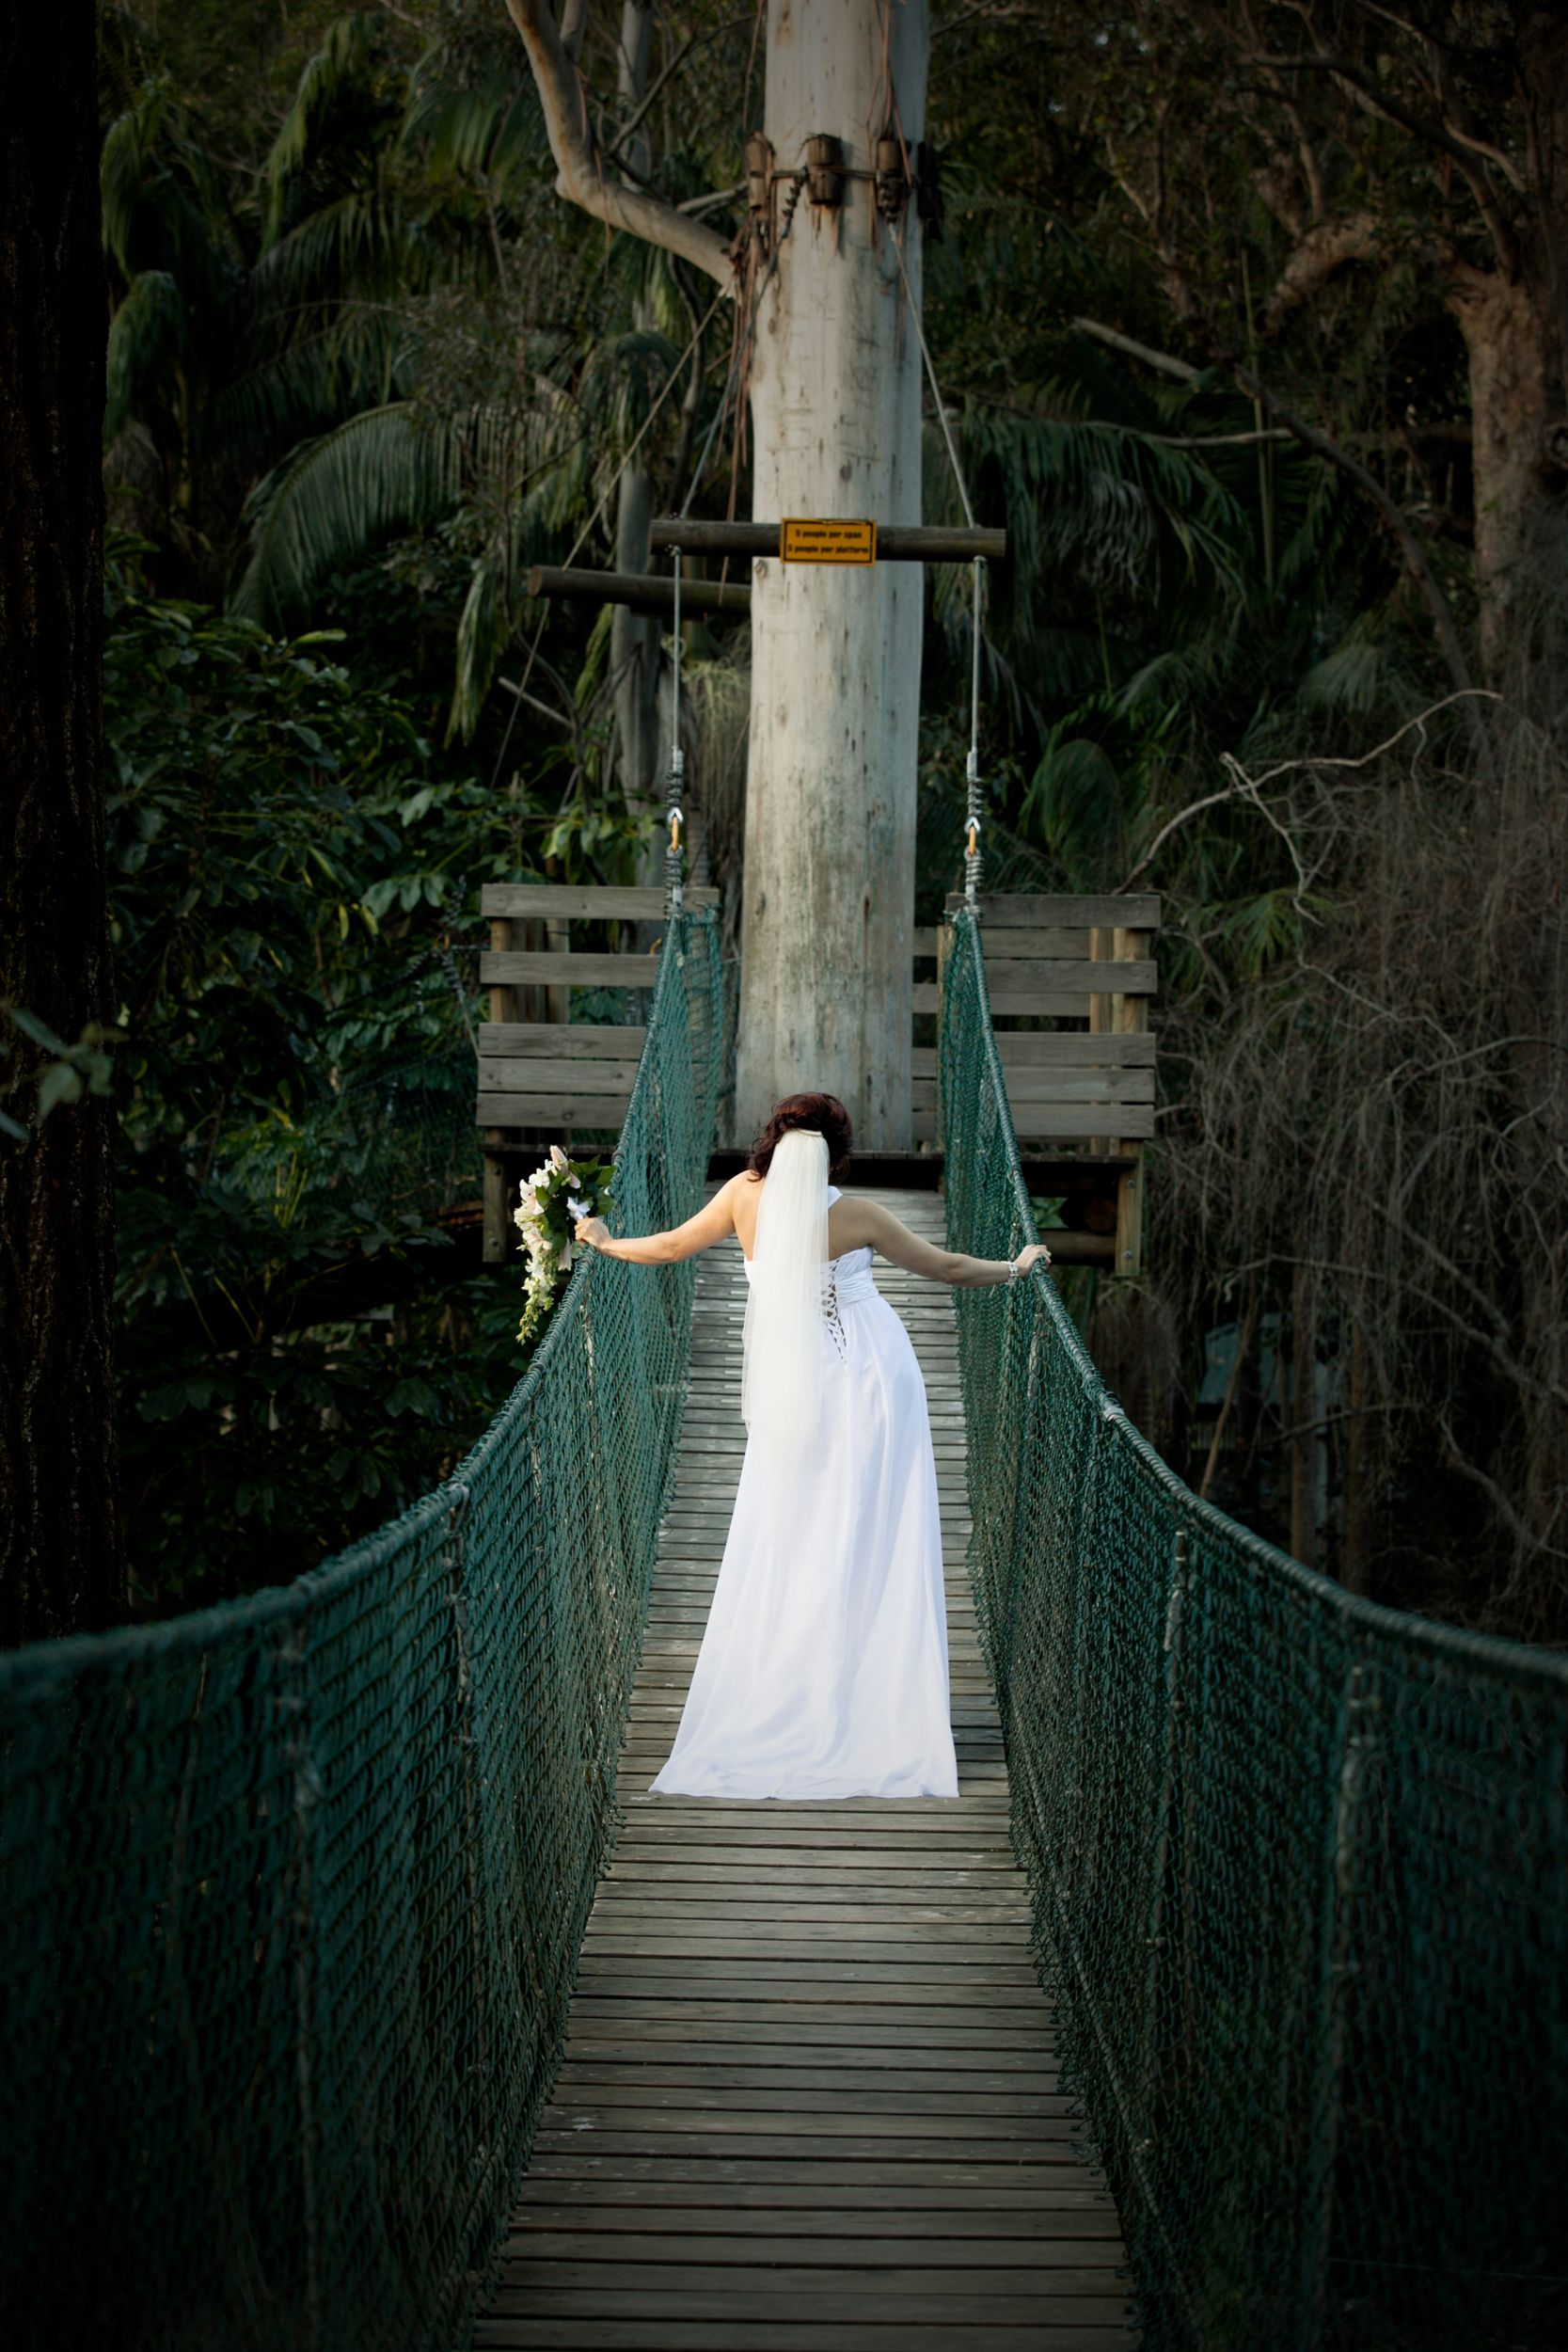 Have Your Wedding At Our Rainforest Amphitheatre Choose From 4 Beautiful Reception Venues For An Unforgettable Day On Tamborine Mountain